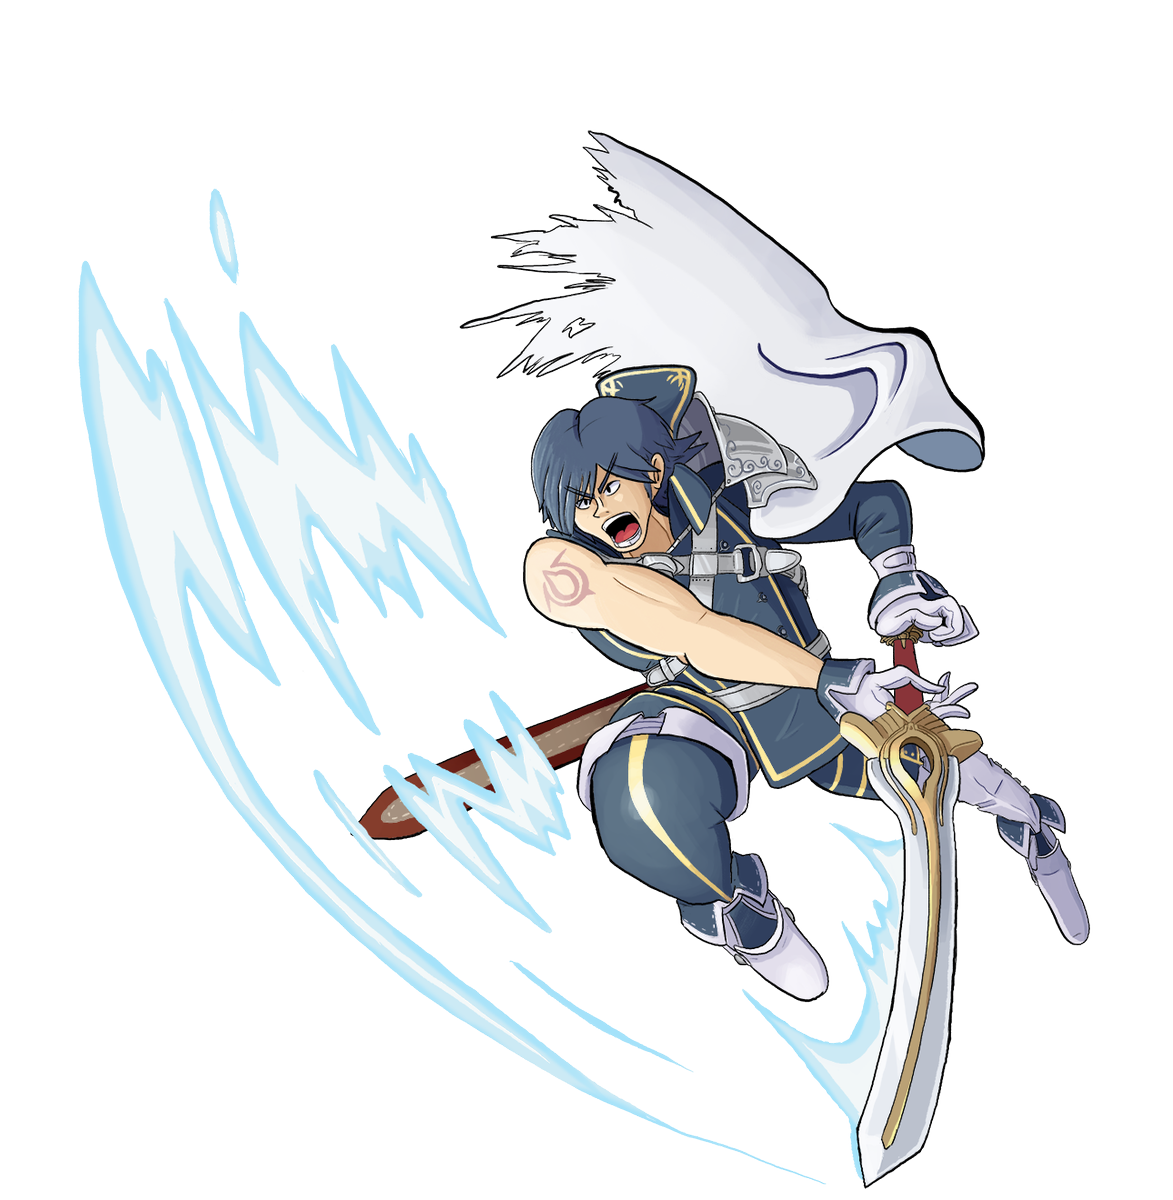 Chrom I did for a Smash Collab I was asked to be apart of. And yes, I CHOSE to do Chrom. But if you've been following long enough, that must've been pretty obvious, haha